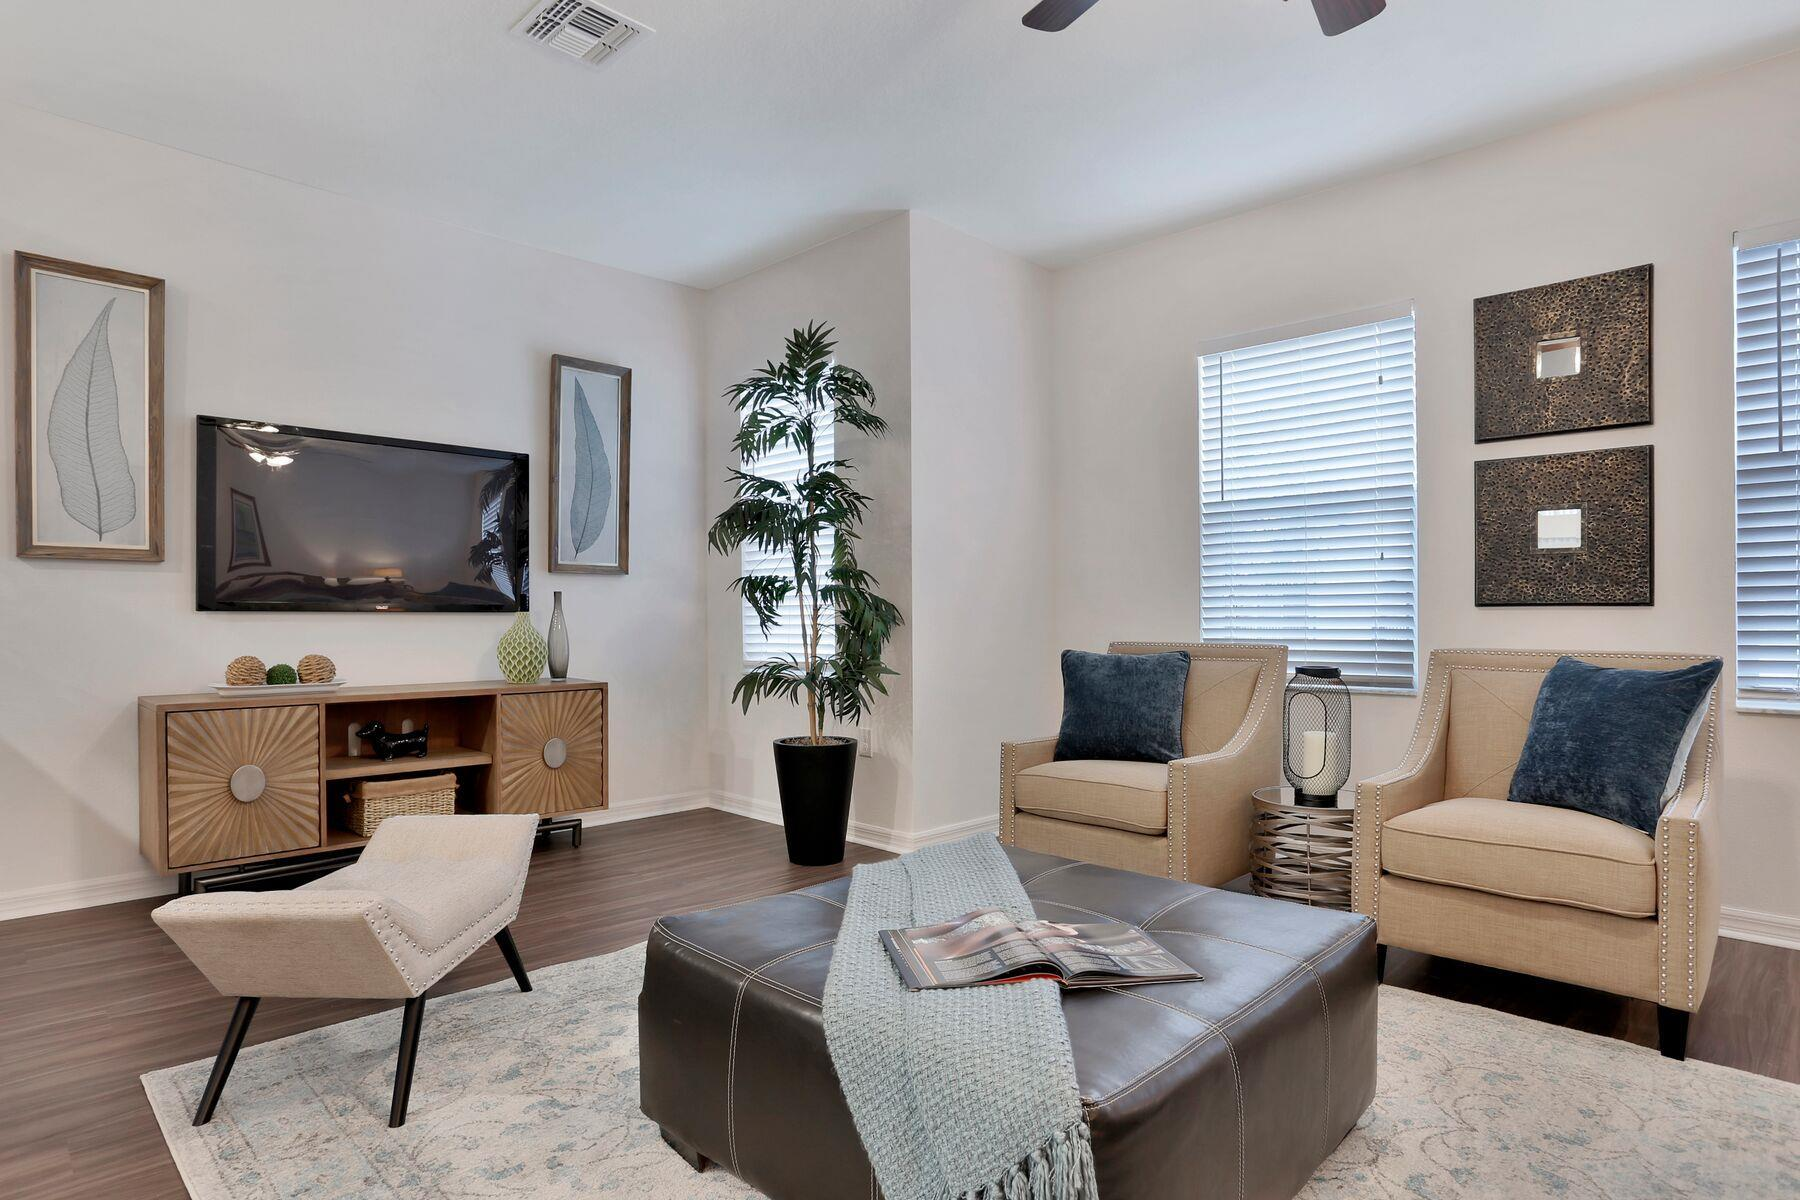 Living Area featured in the Bimini By LGI Homes in Orlando, FL